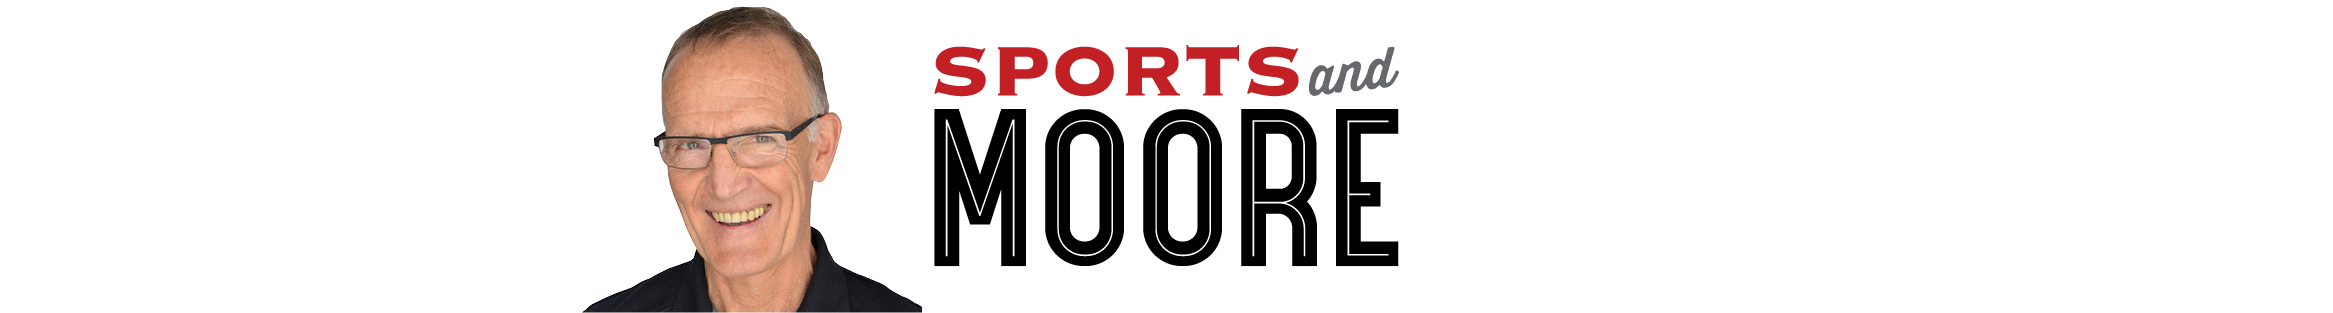 Sports and Moore